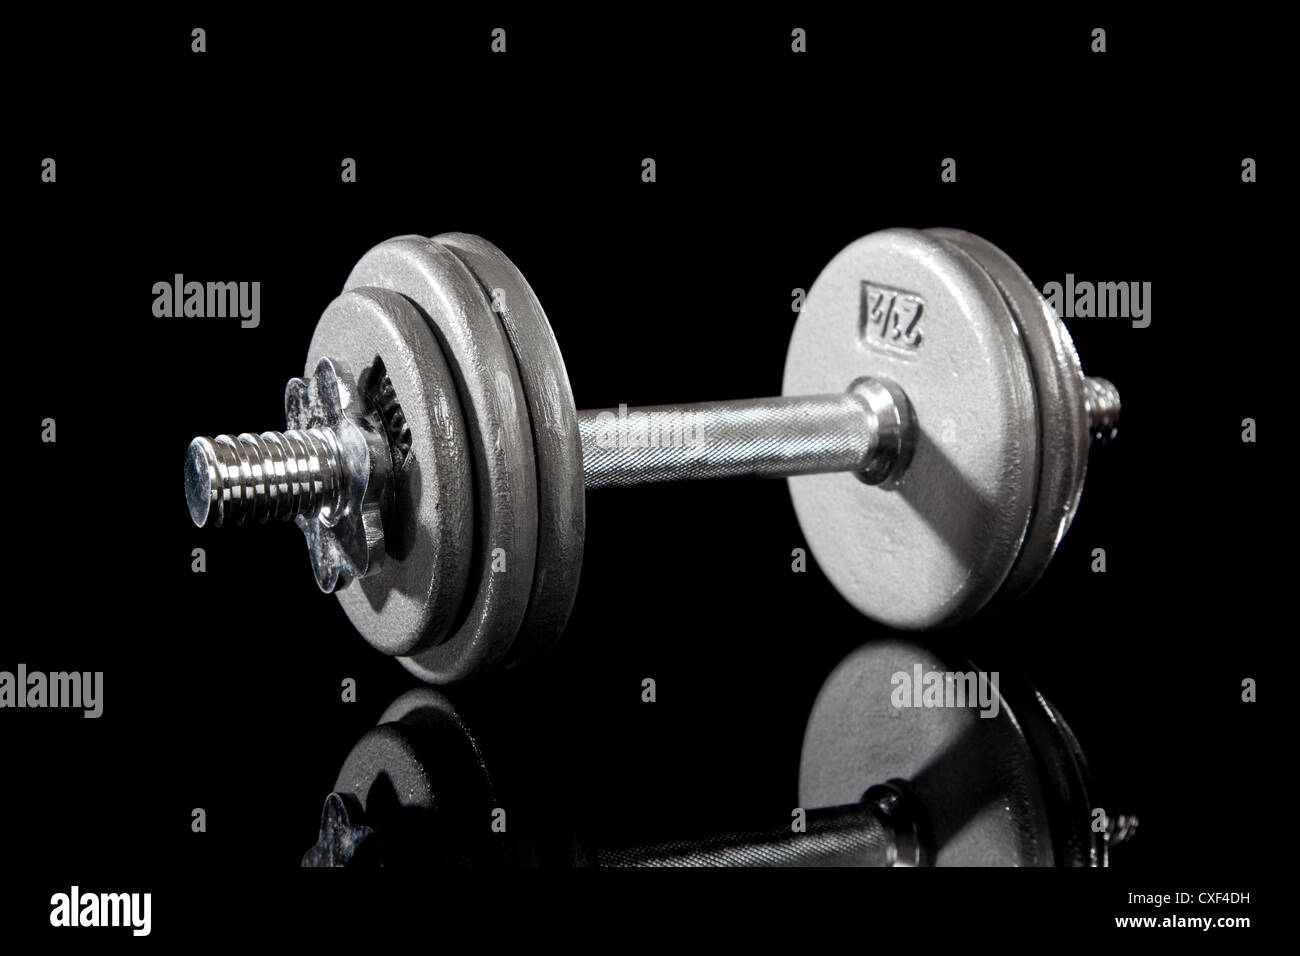 Dumbbell on a black background - Stock Image